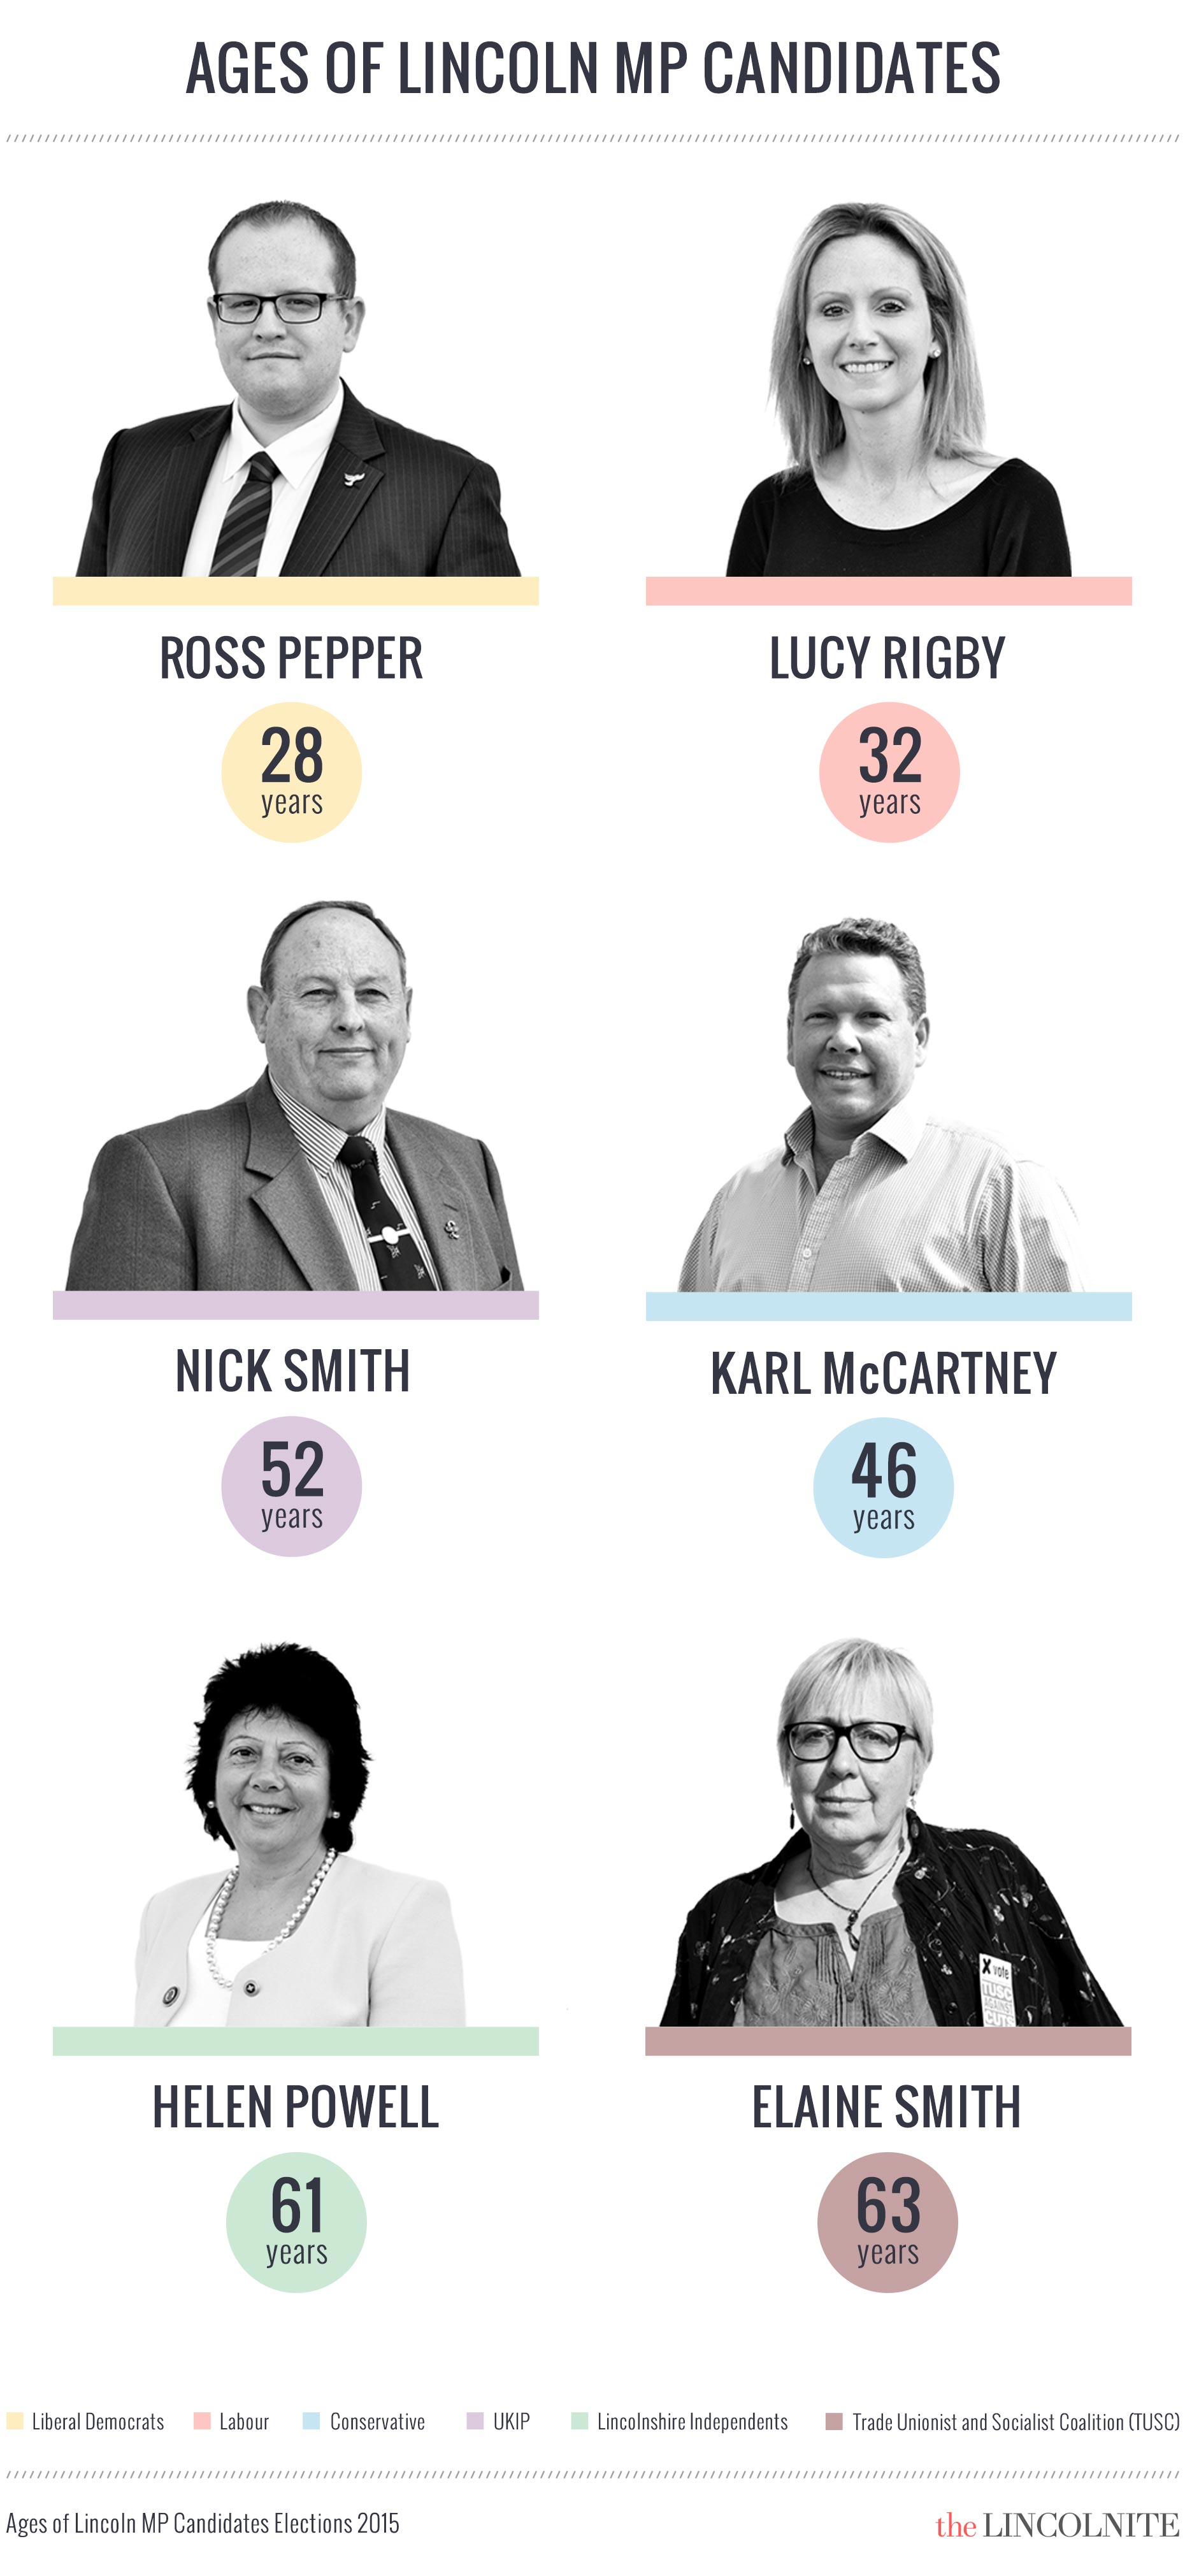 The MP candidates for Lincoln, by age. (Click to enlarge)